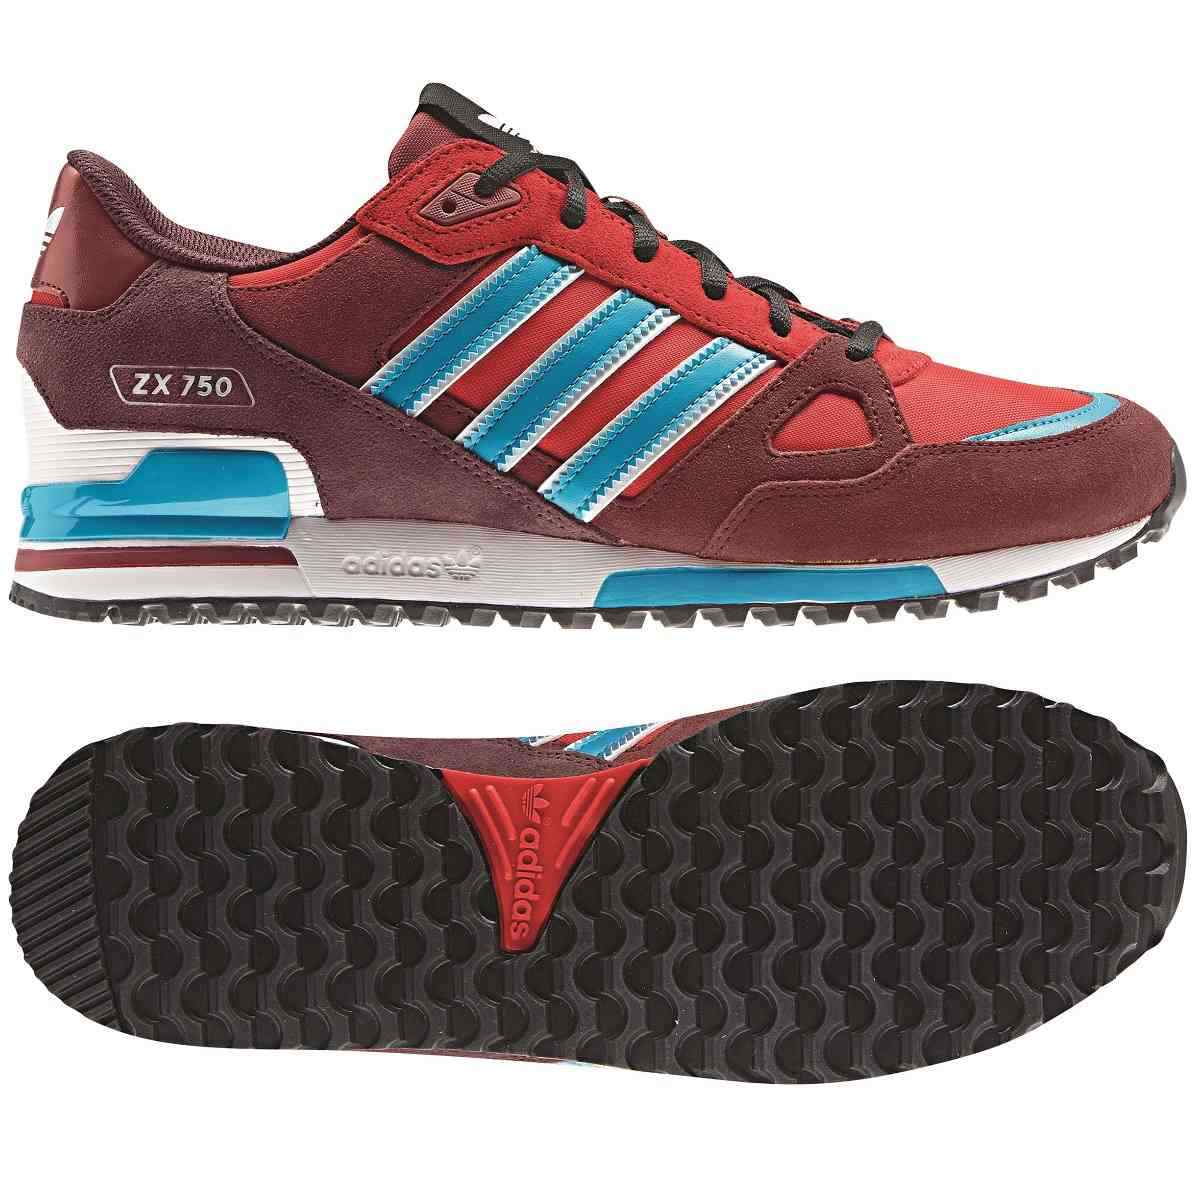 adidas zx 850 schuhe turnschuhe sneaker herren wildleder rot ebay. Black Bedroom Furniture Sets. Home Design Ideas